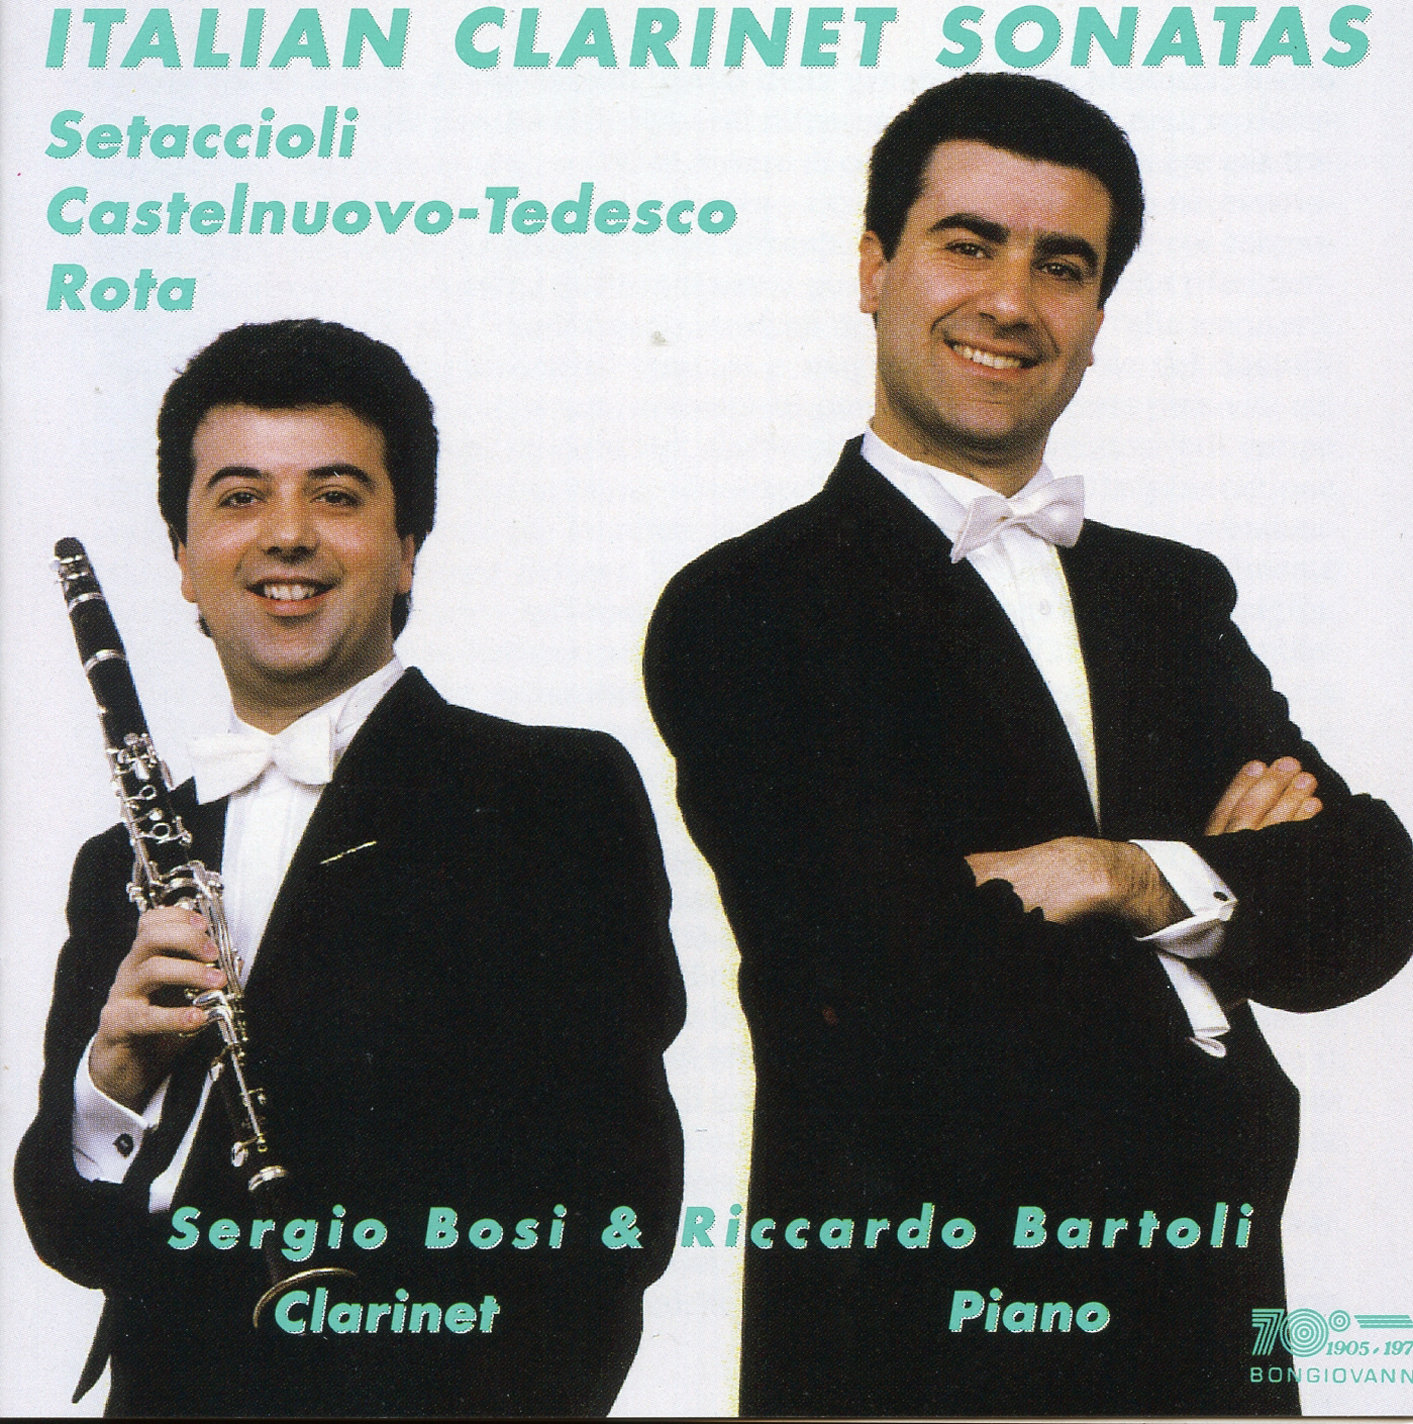 Clarinet Sonata in E-Flat Major, Op. 31, Clarinet Sonata in E-Flat Major, Op. 31: I. Meriggio. Allegro appassionato